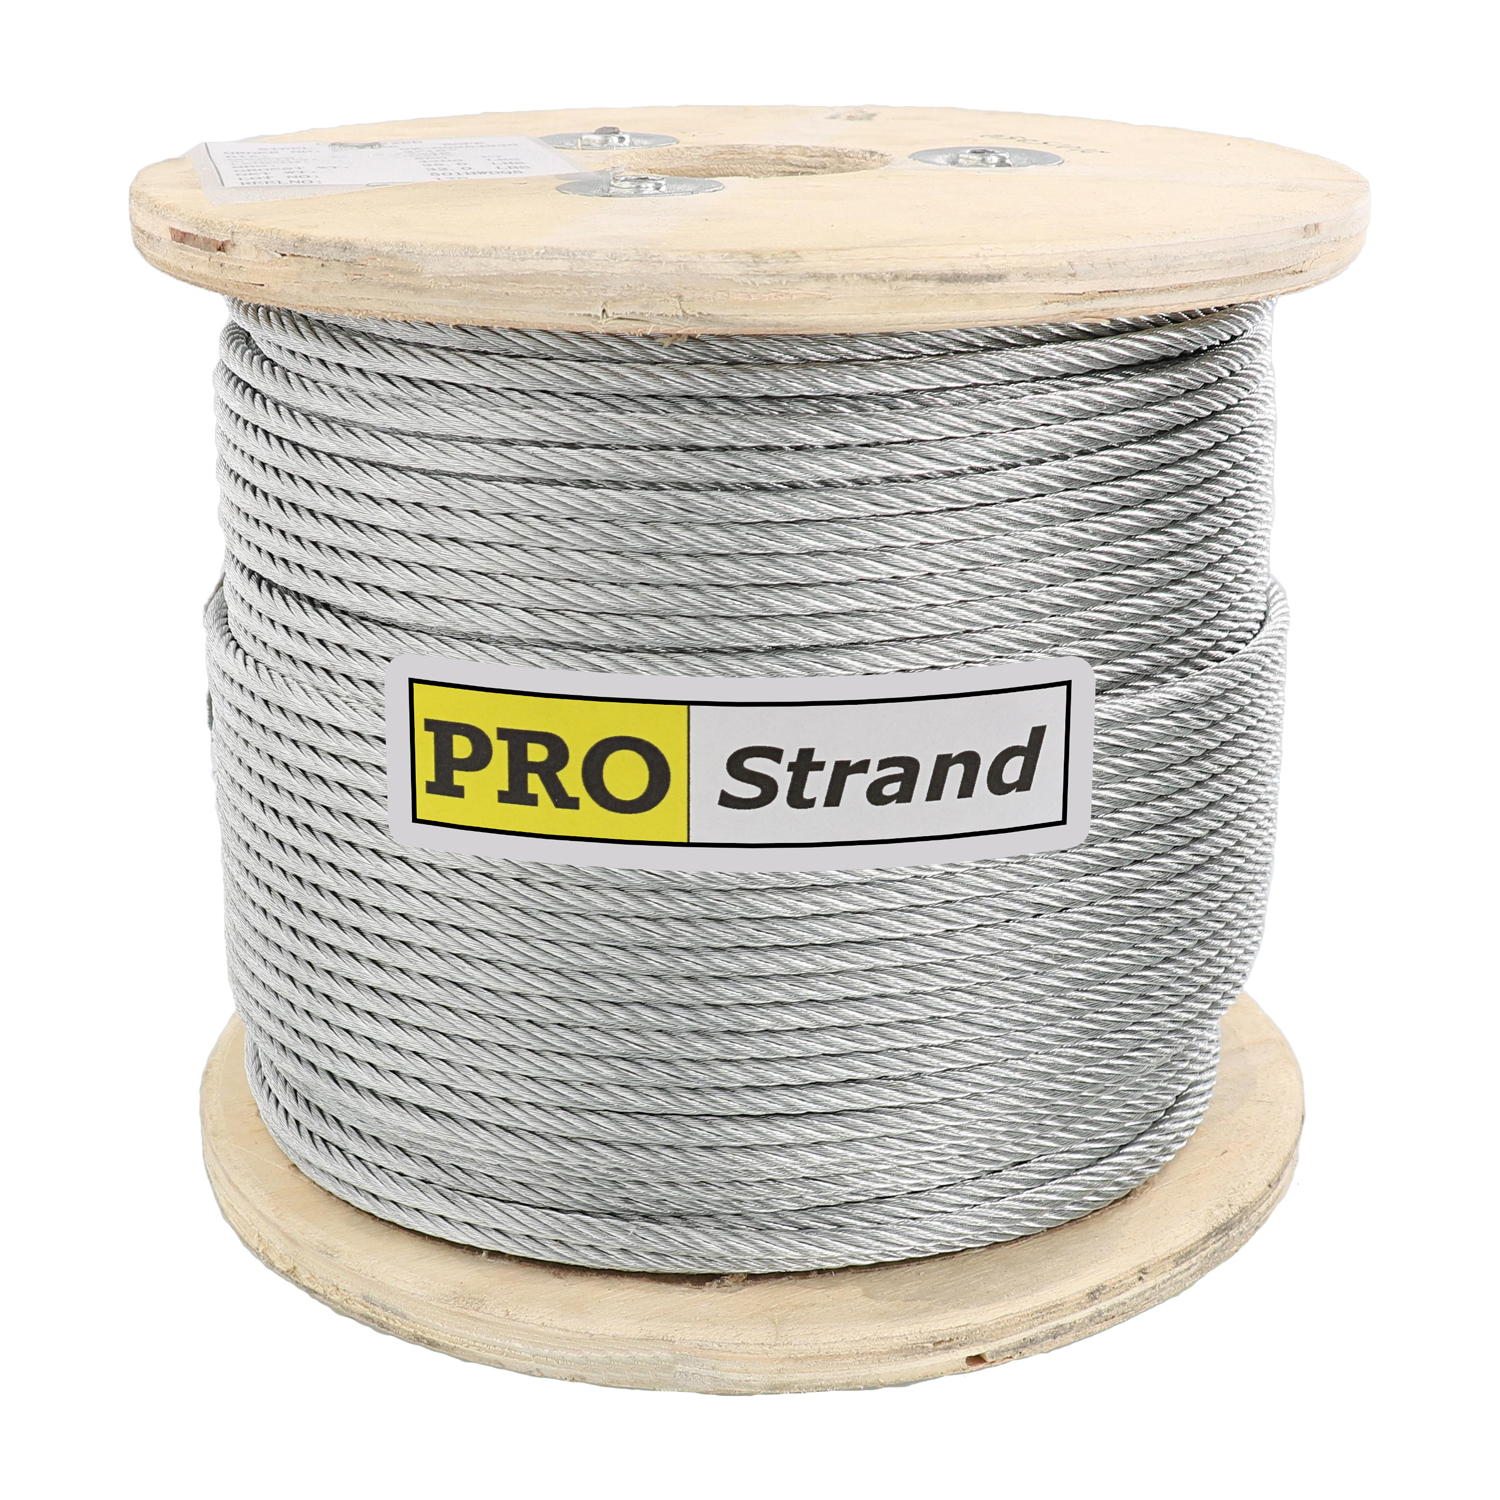 3⁄16 inch, 7 x 19 Galvanized Cable